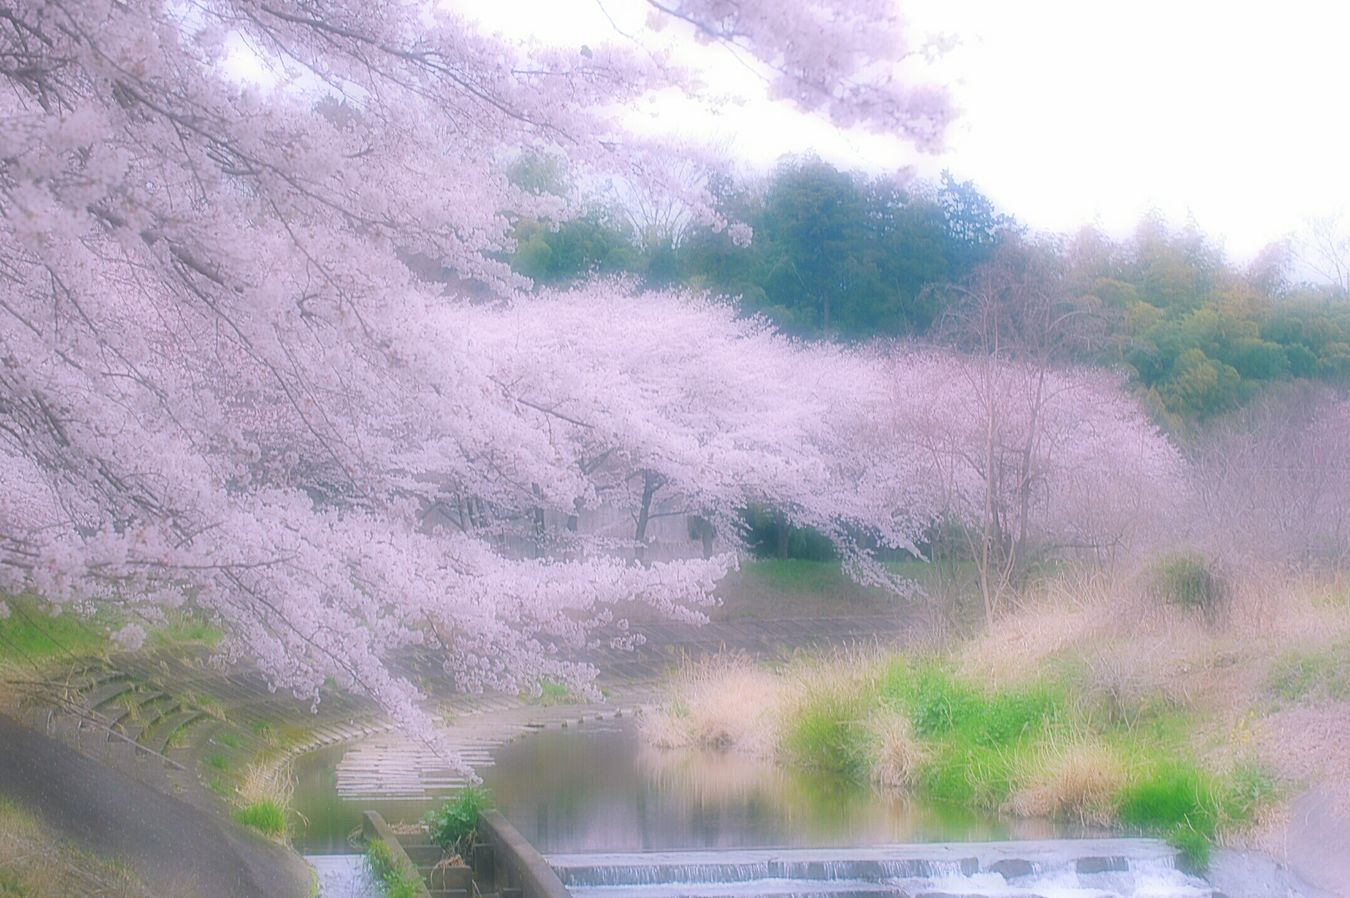 Relaxing Spring Colours Colors Spring 春 Hazy Days Dreamfantasy Airy Flowers Bokeh Cherry Blossoms Sakura 桜 Japan Pink Cloudy Spring Time